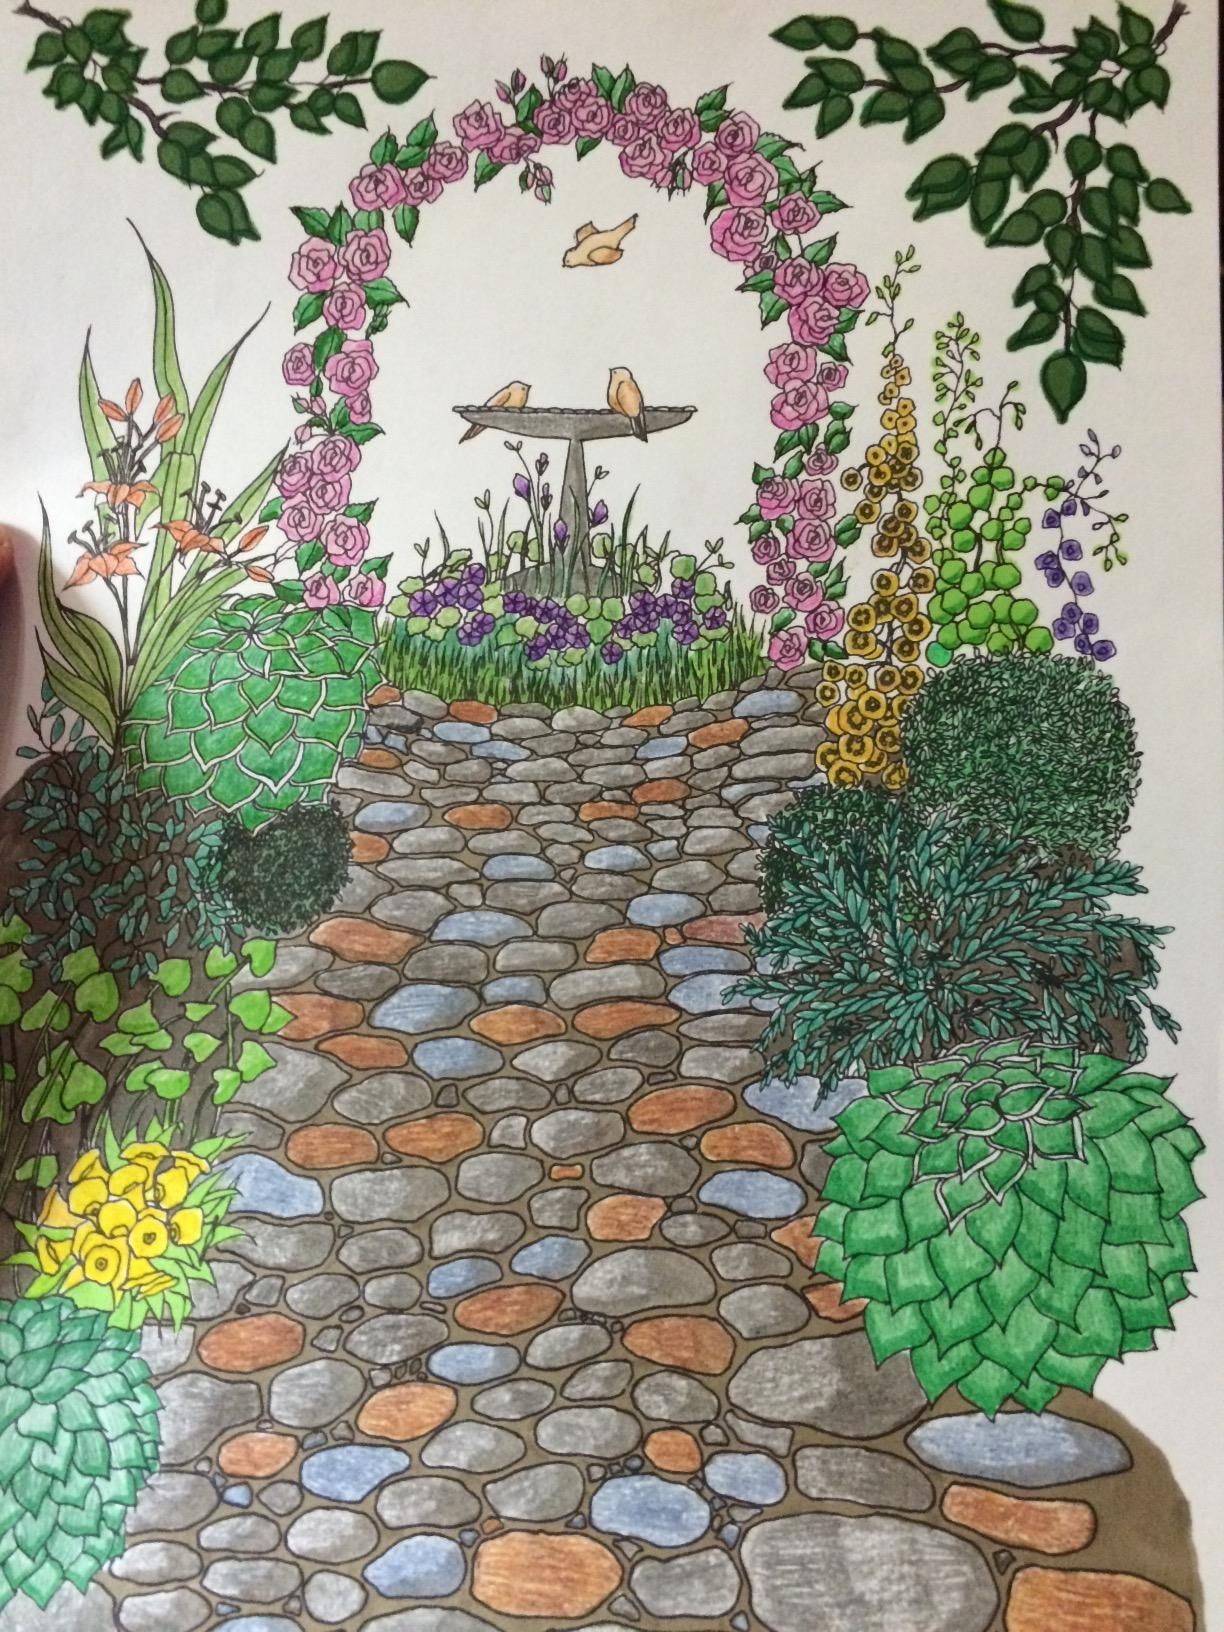 Creative Haven Whimsical Gardens Coloring Book Adult Coloring Alexandra Cowell 9780486 Creative Haven Coloring Books Gardens Coloring Book Whimsical Garden